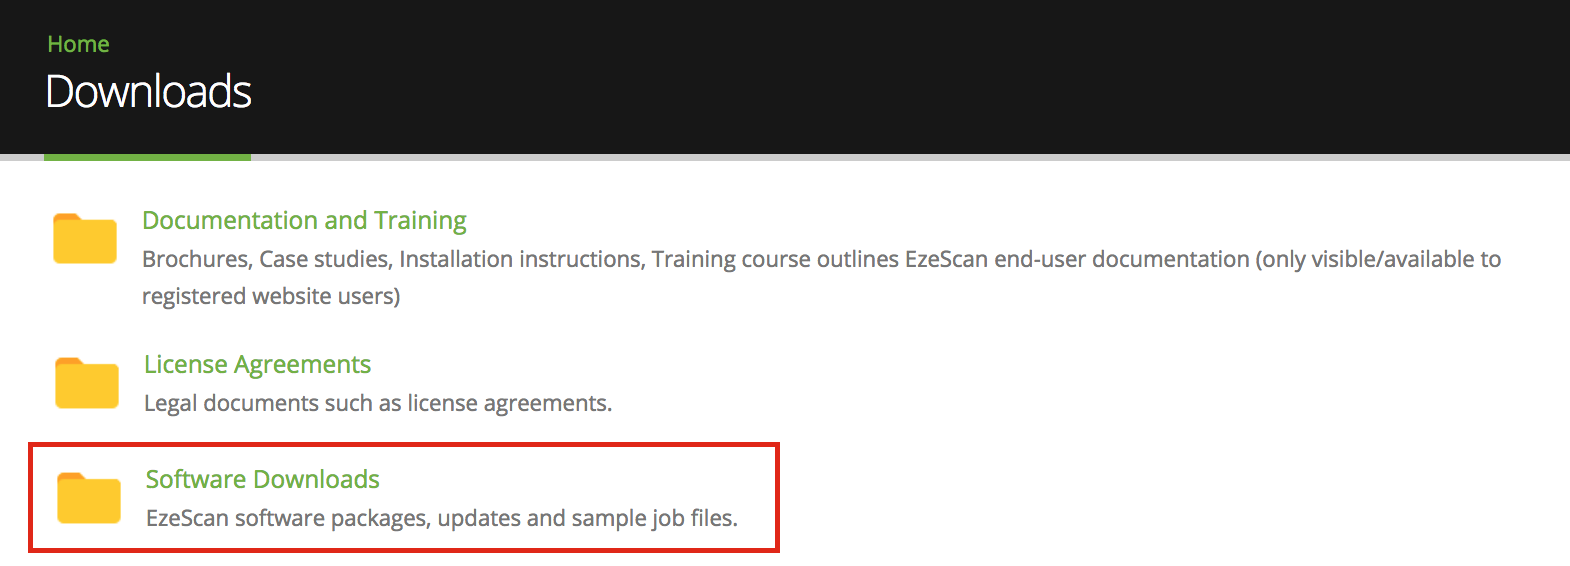 Ezescan-FAQ-Downloading-an-evaluation-version-of-EzeScan-Image6.png